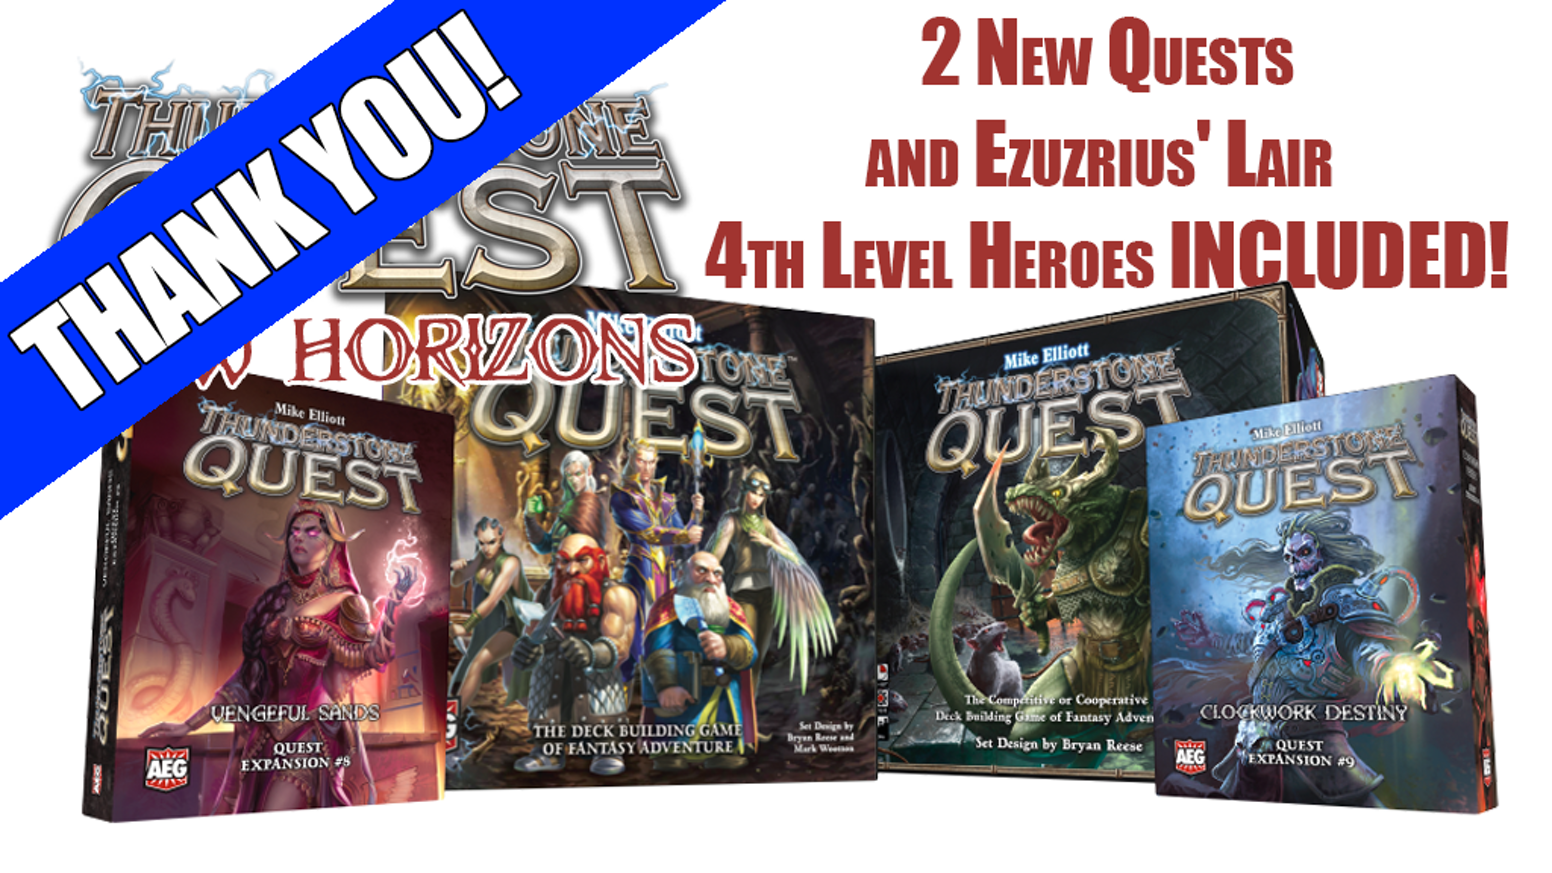 Mike Elliott's deckbuilding game of heroic adventure returns with two new Quests and 4th Level Heroes!